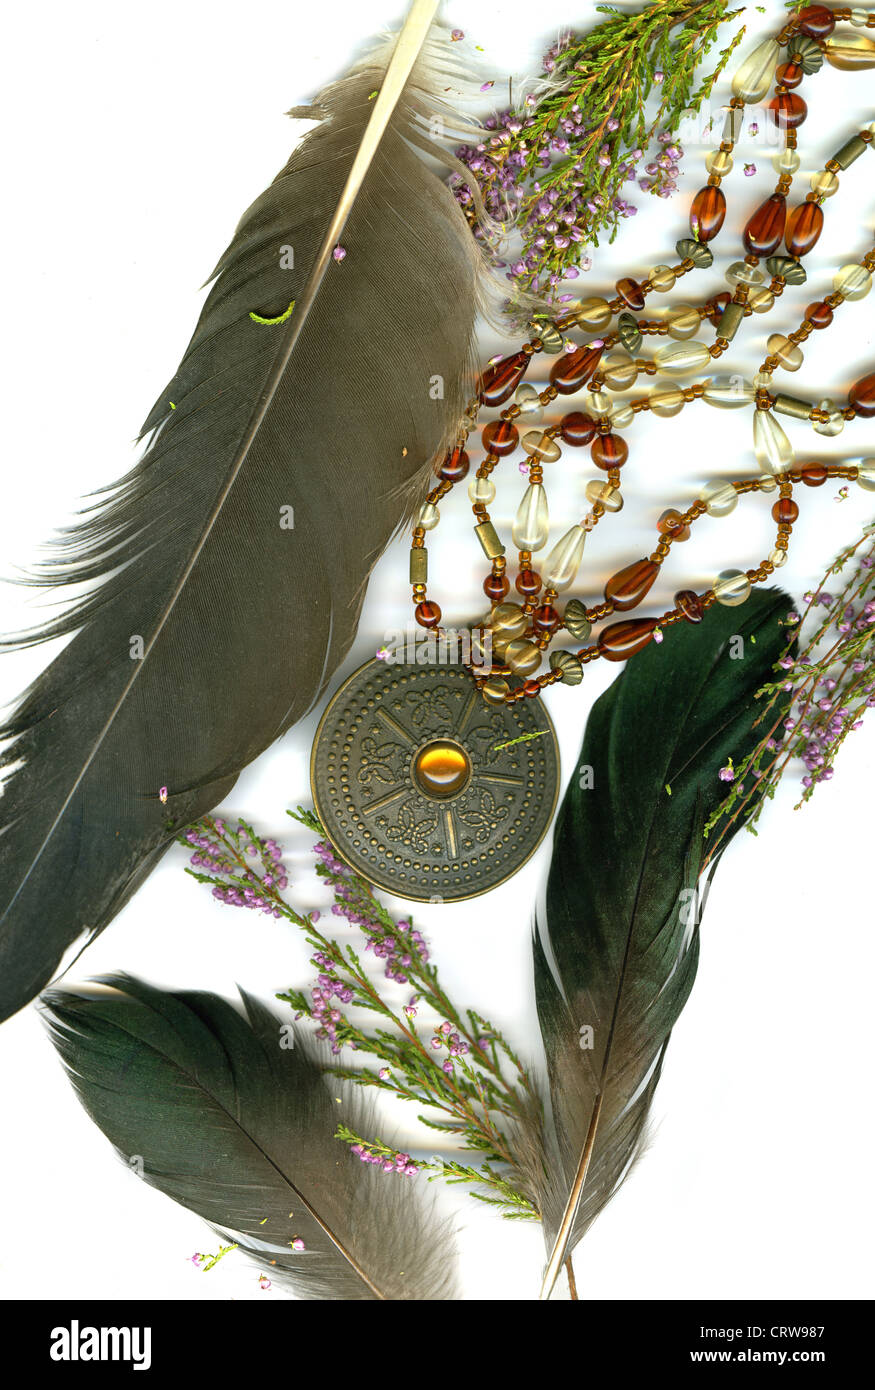 Heather, plumes and old medallion - Stock Image